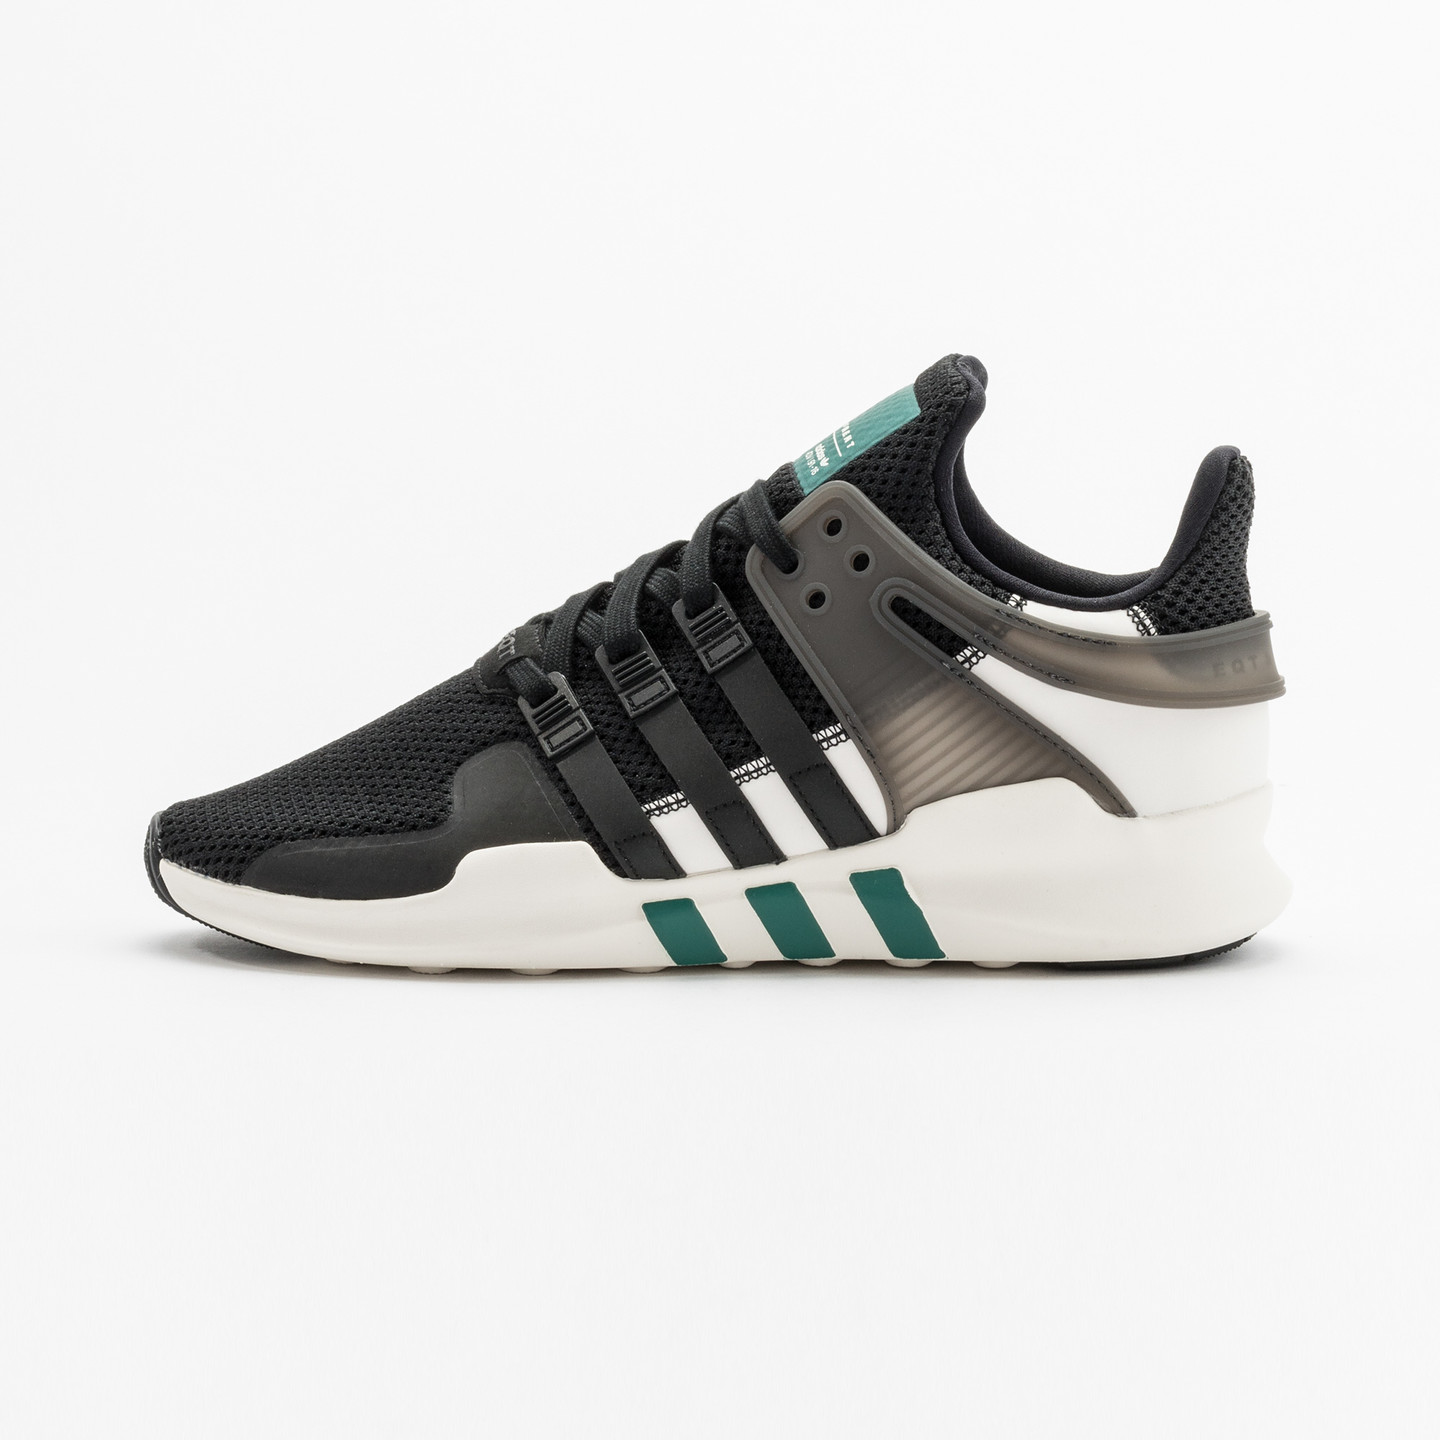 Adidas EQT Support ADV 'Reflective Pack' Core Black / Sub Green BA8321-40.66